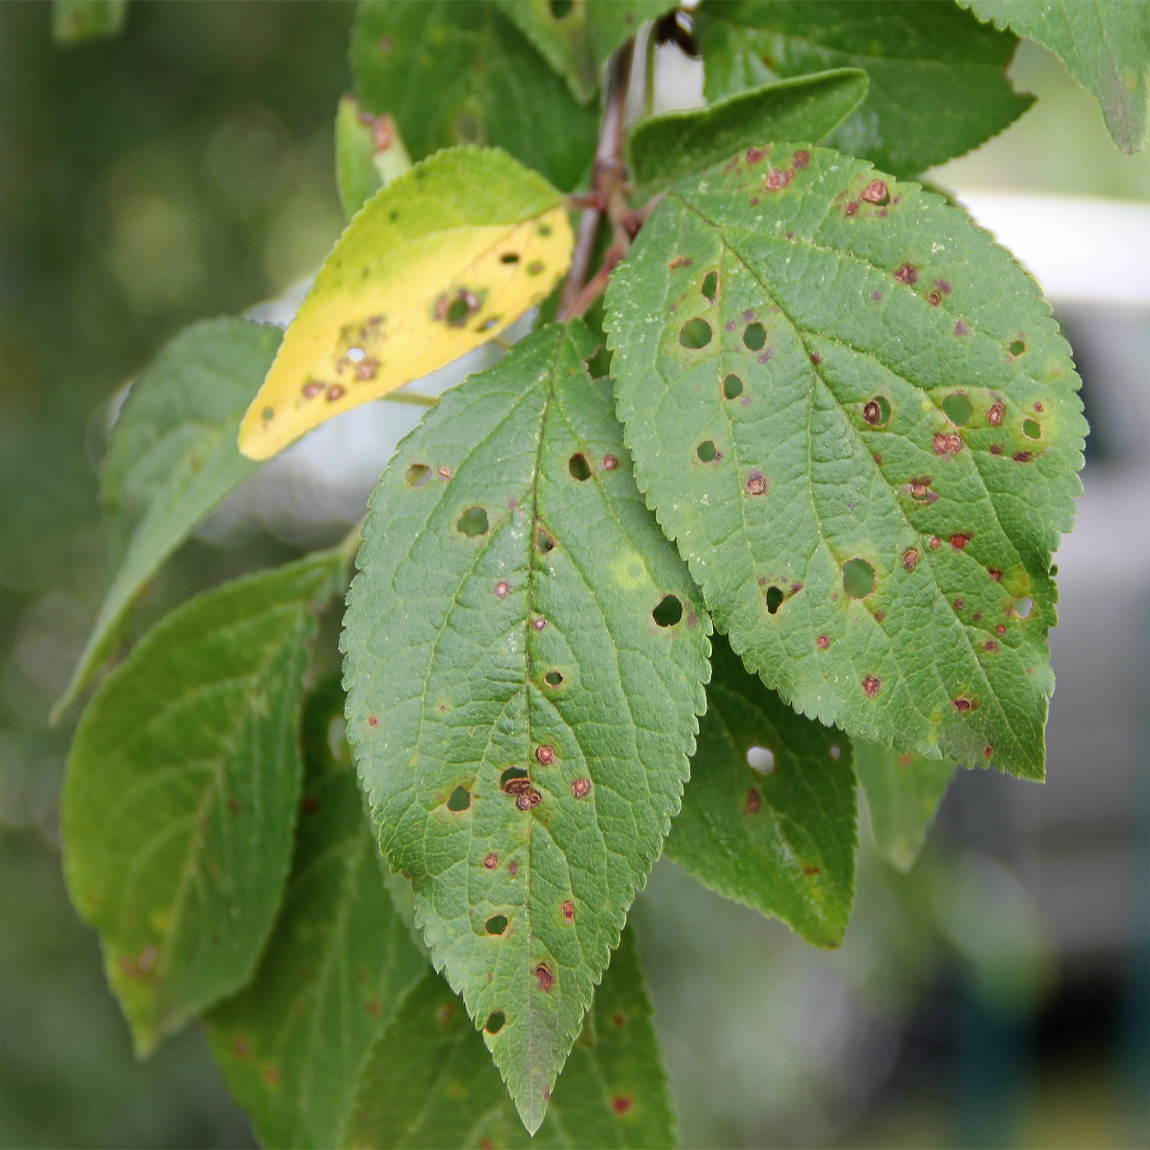 Shot Hole Disease on Cherry Leaves